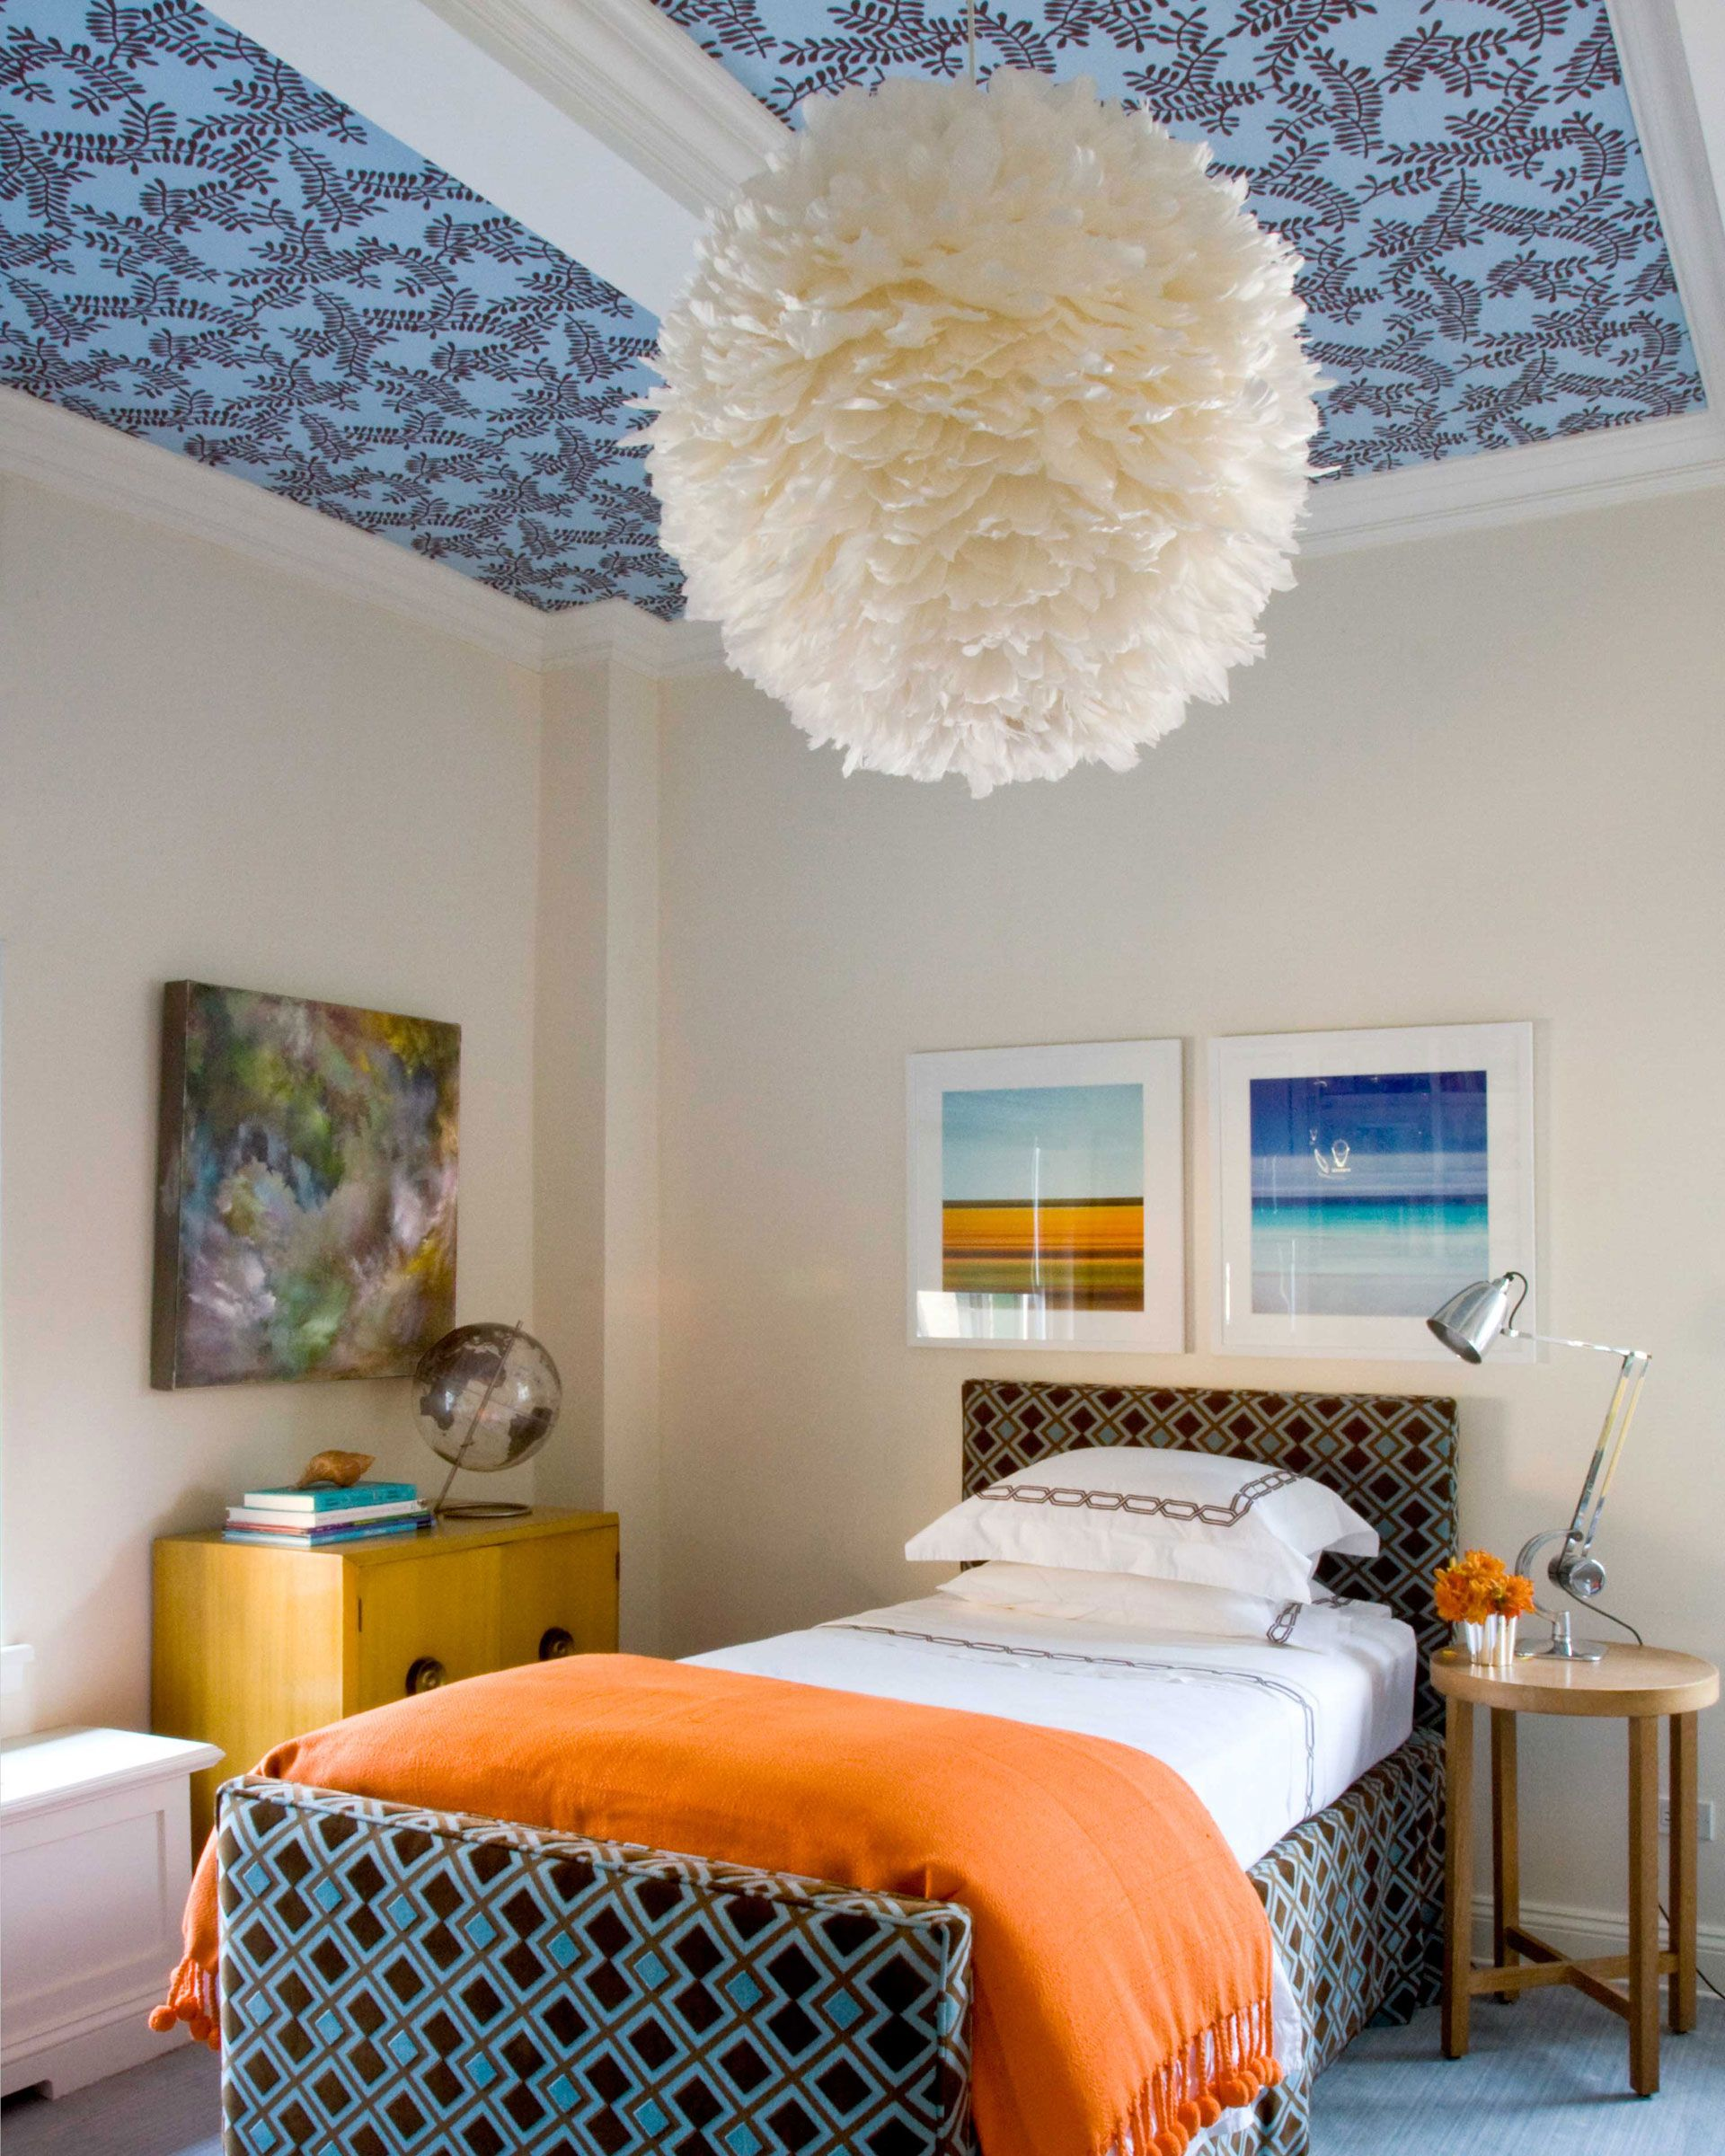 20 Kids Room Design Ideas Cool Kids Bedroom Decor And Style